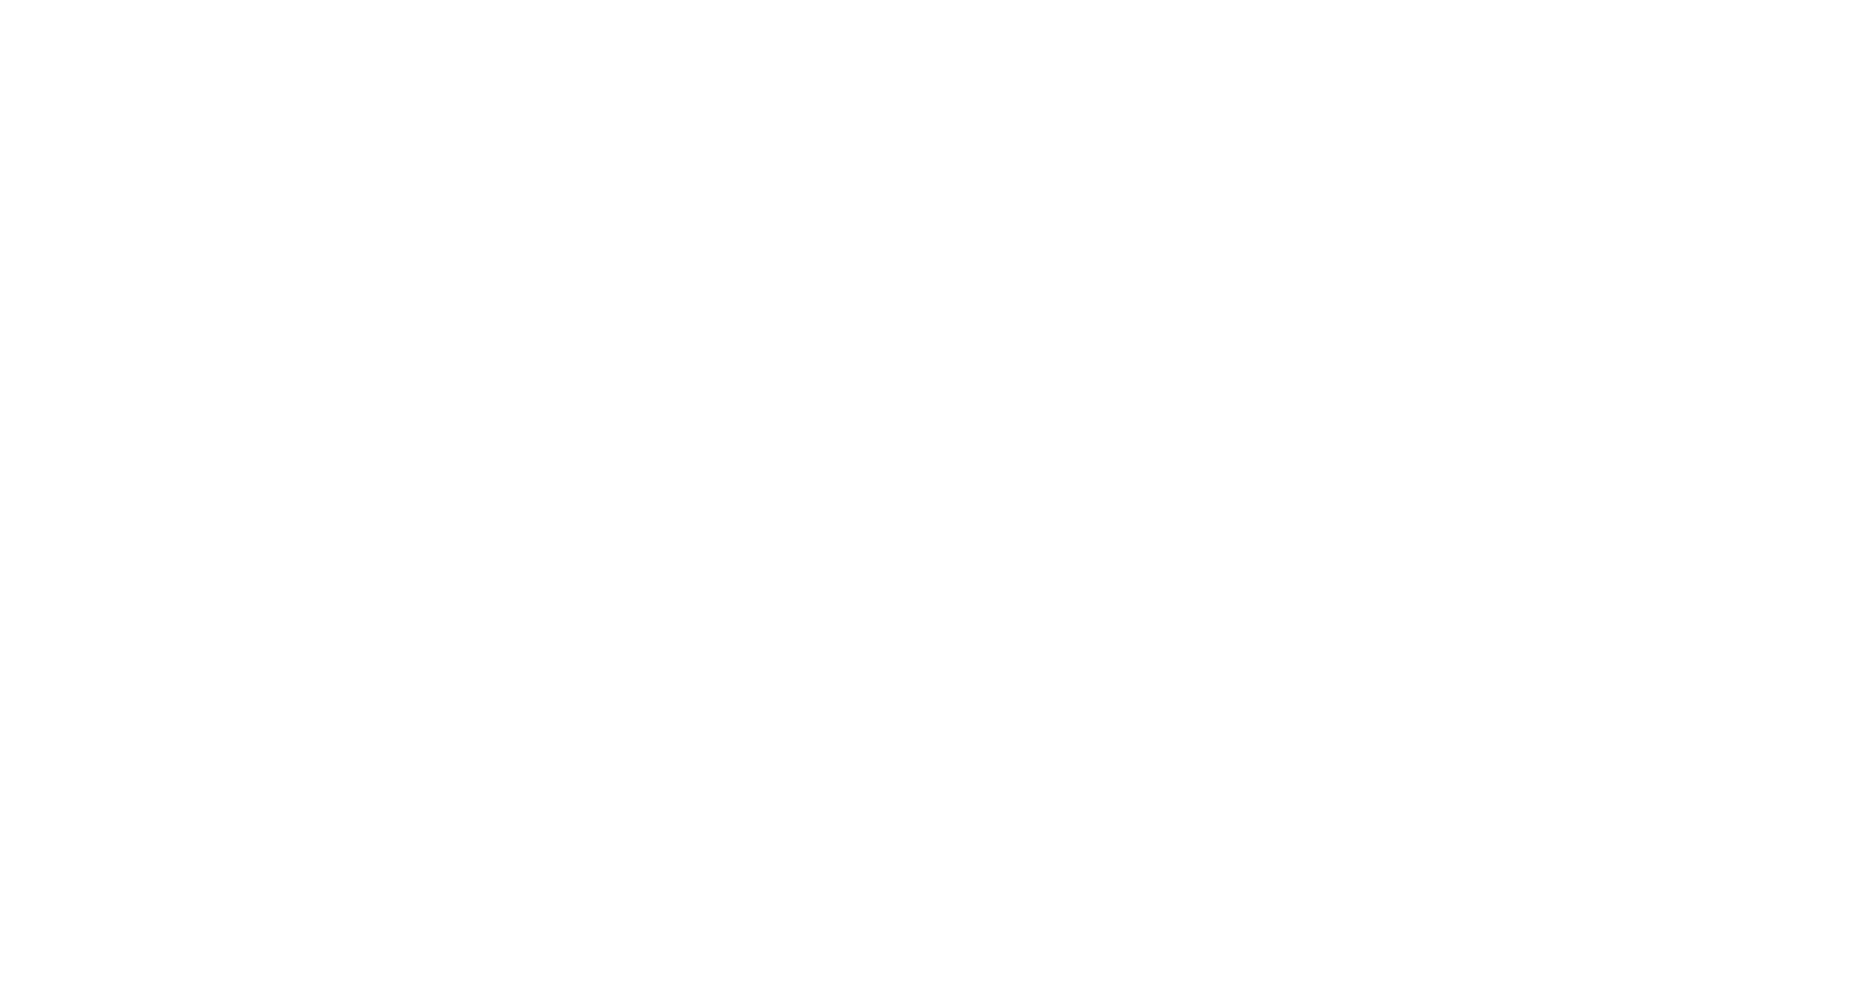 Logopedie Laarbeek